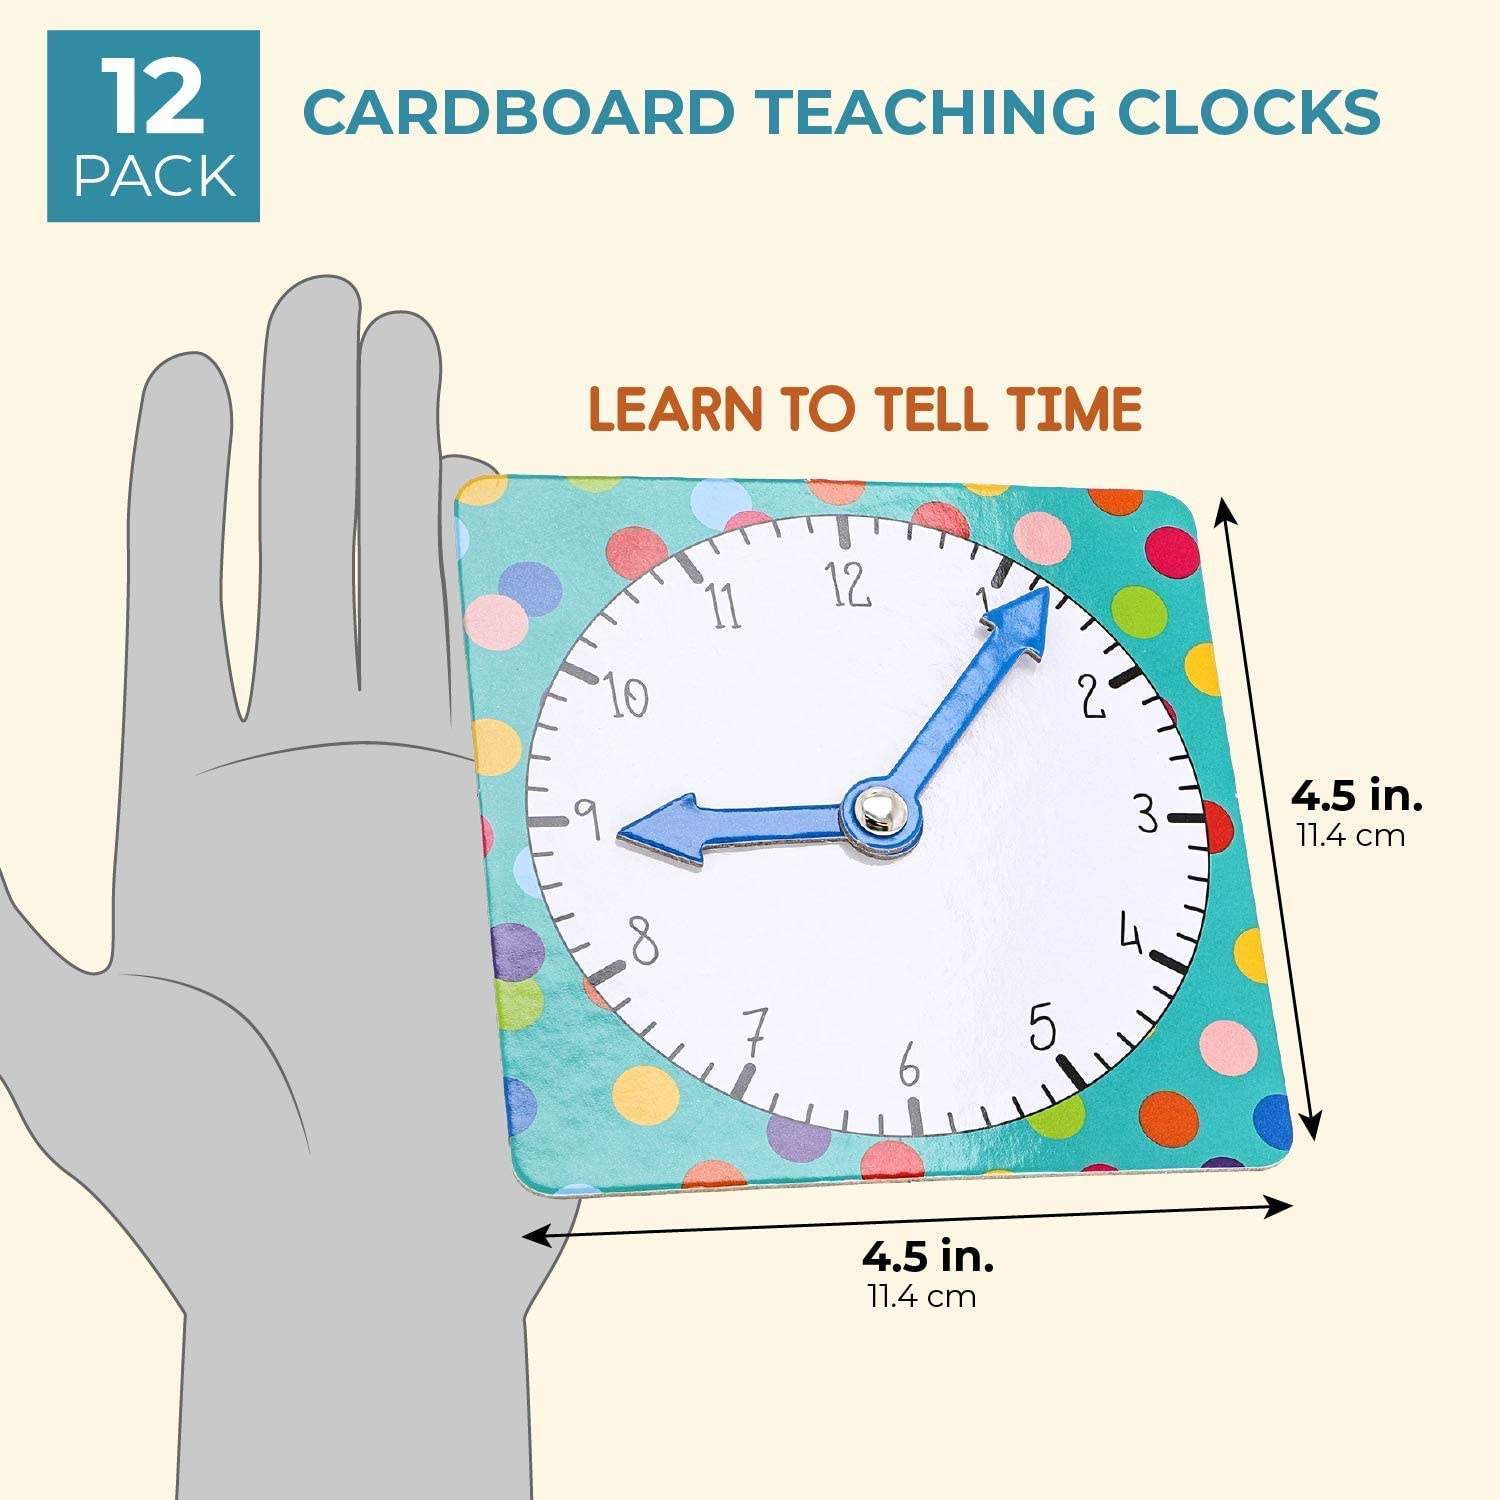 Teaching Clocks 2 Designs Juvale 12 Pack Learn To Tell Time Teaching Clock For Kids And Students 4 5 Inches Toys Games Stevesdogtraining Co Uk An inch was defined to be equivalent to. steves dog training